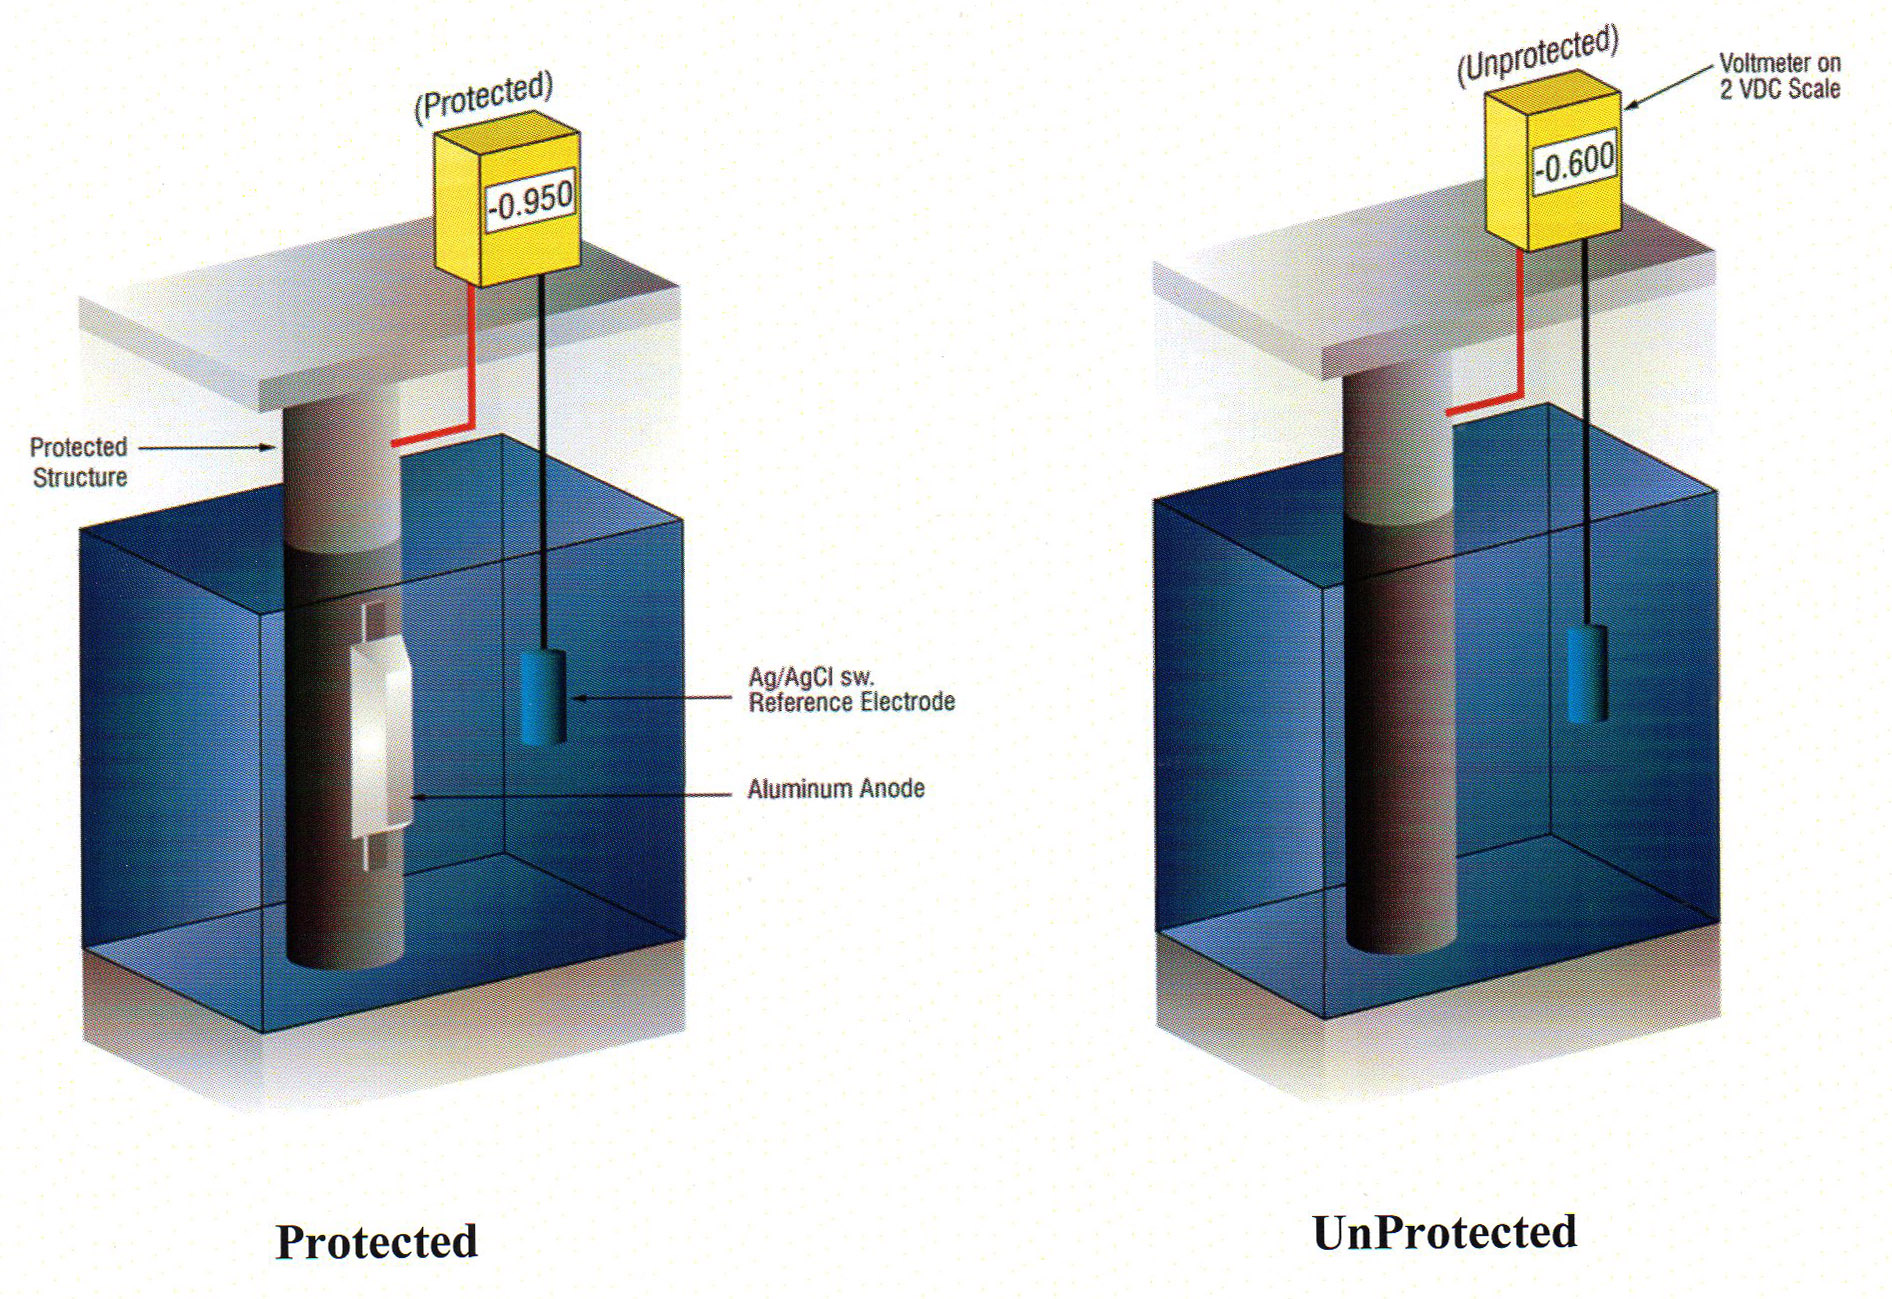 Protected vs Unprotected structures as verified by cathodic protection potential